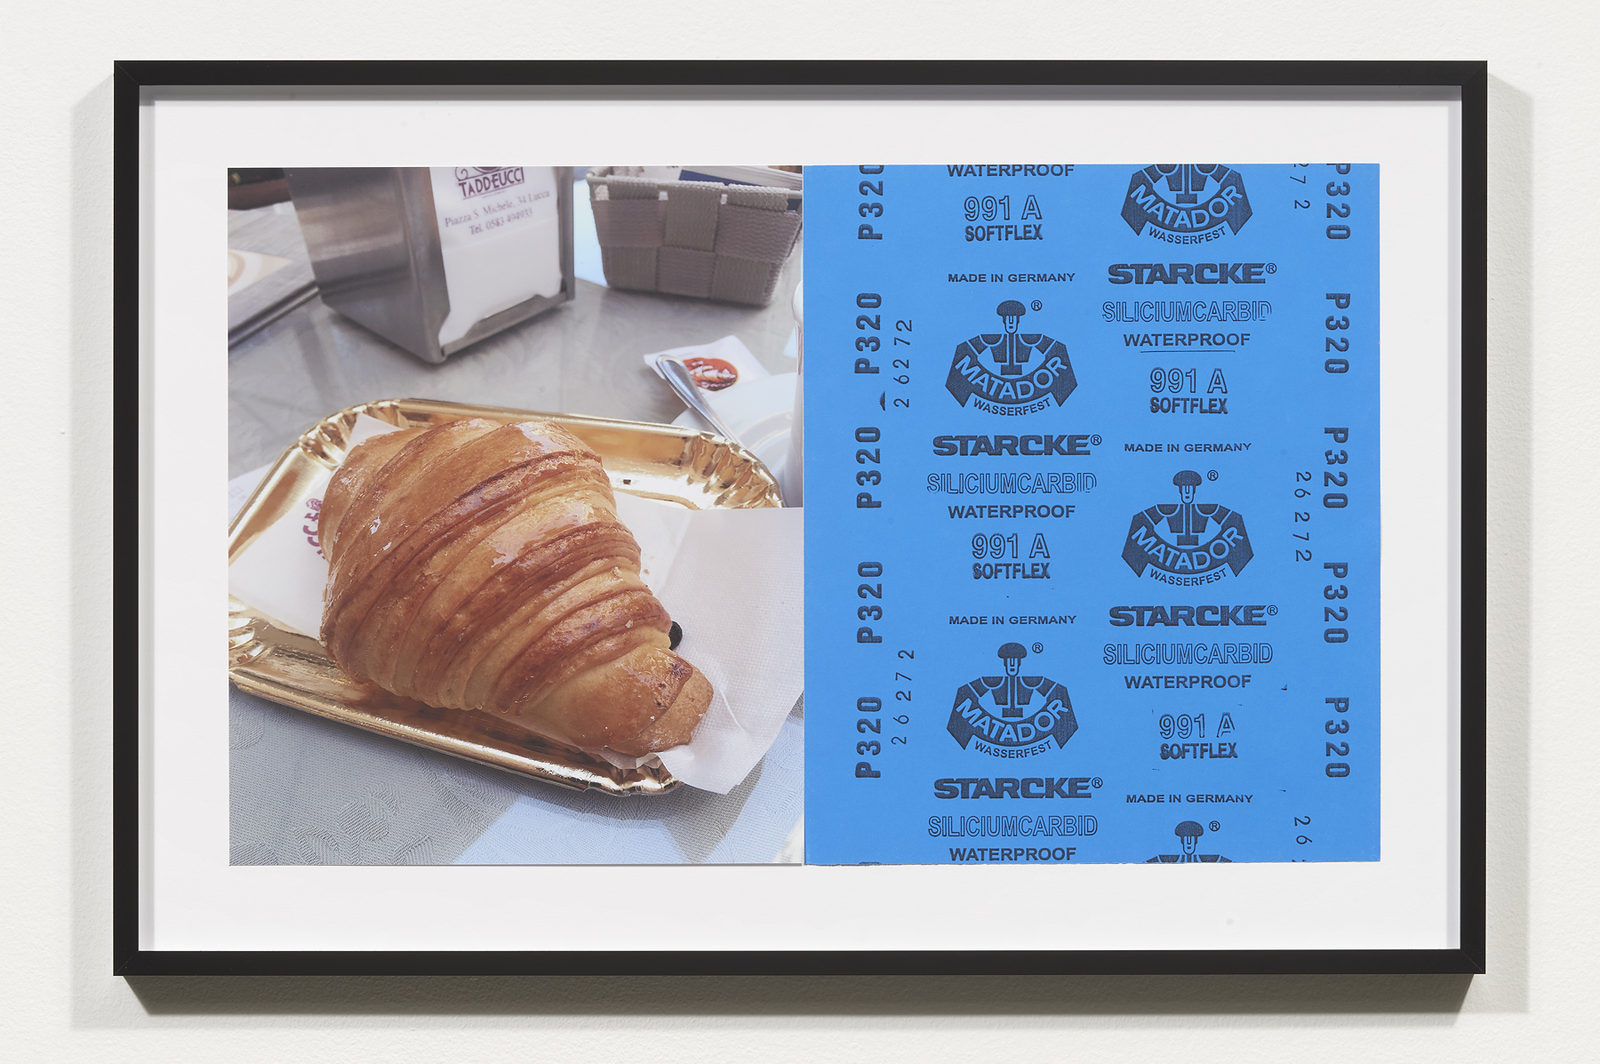 Wermers_Croissants & Architecture #17, 2016_C-print, sandpaper sheet, framed_14 3_8 x 21 1_2 in_NW00058PG